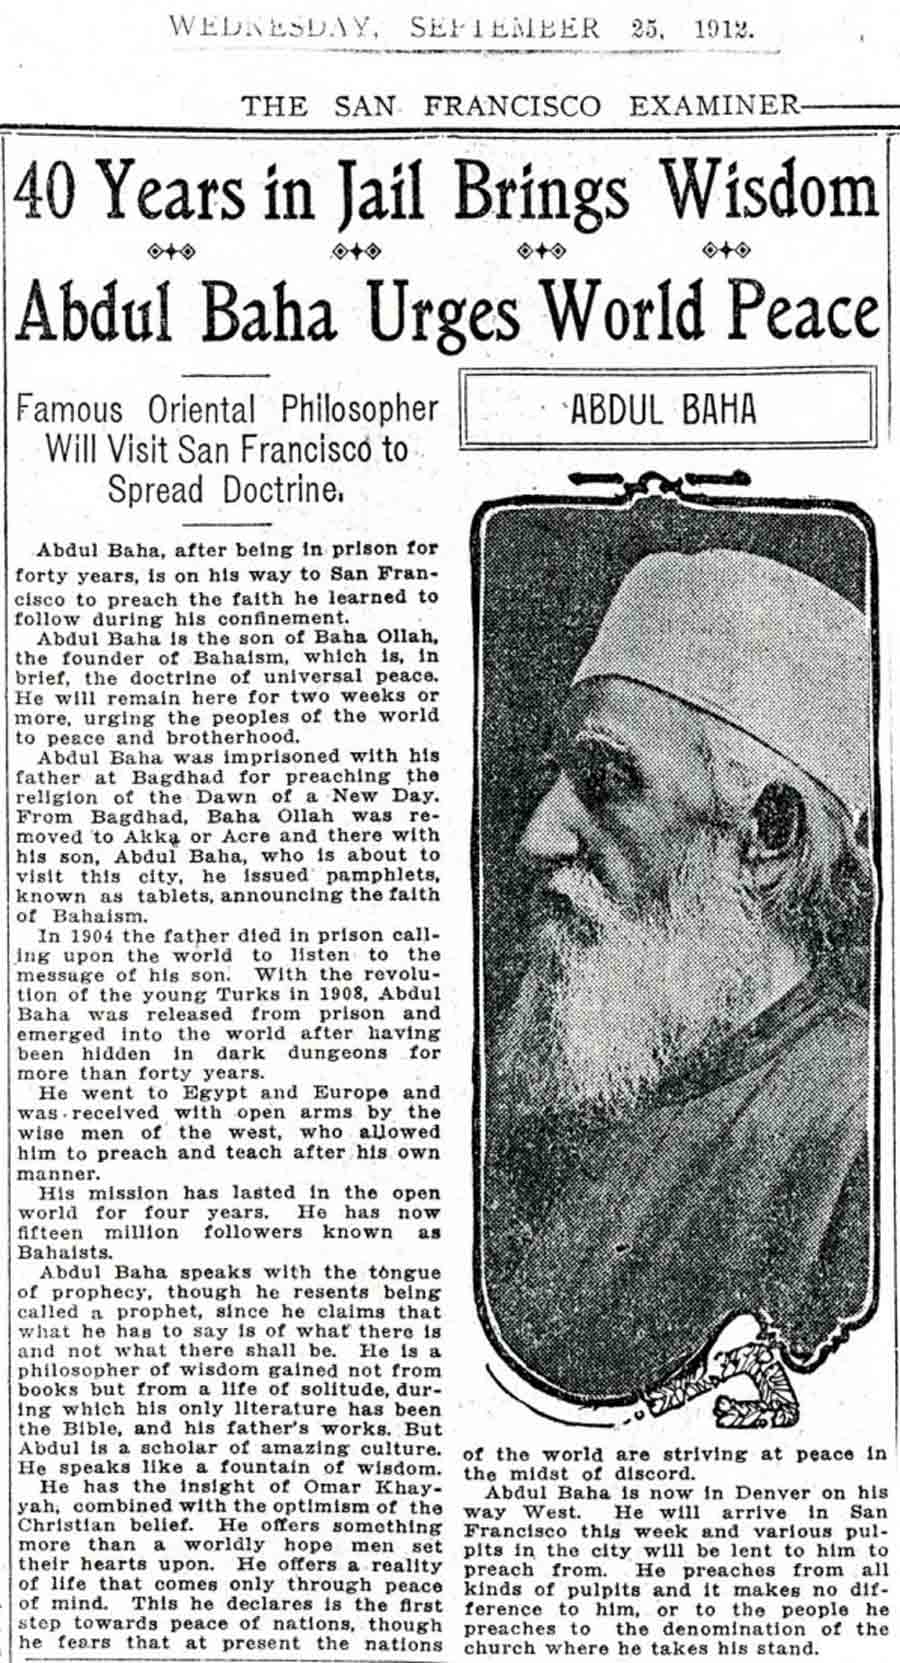 This article from The San Francisco Examiner on 25 September 1912 describes 'Abdu'l-Baha's plans to visit the city.